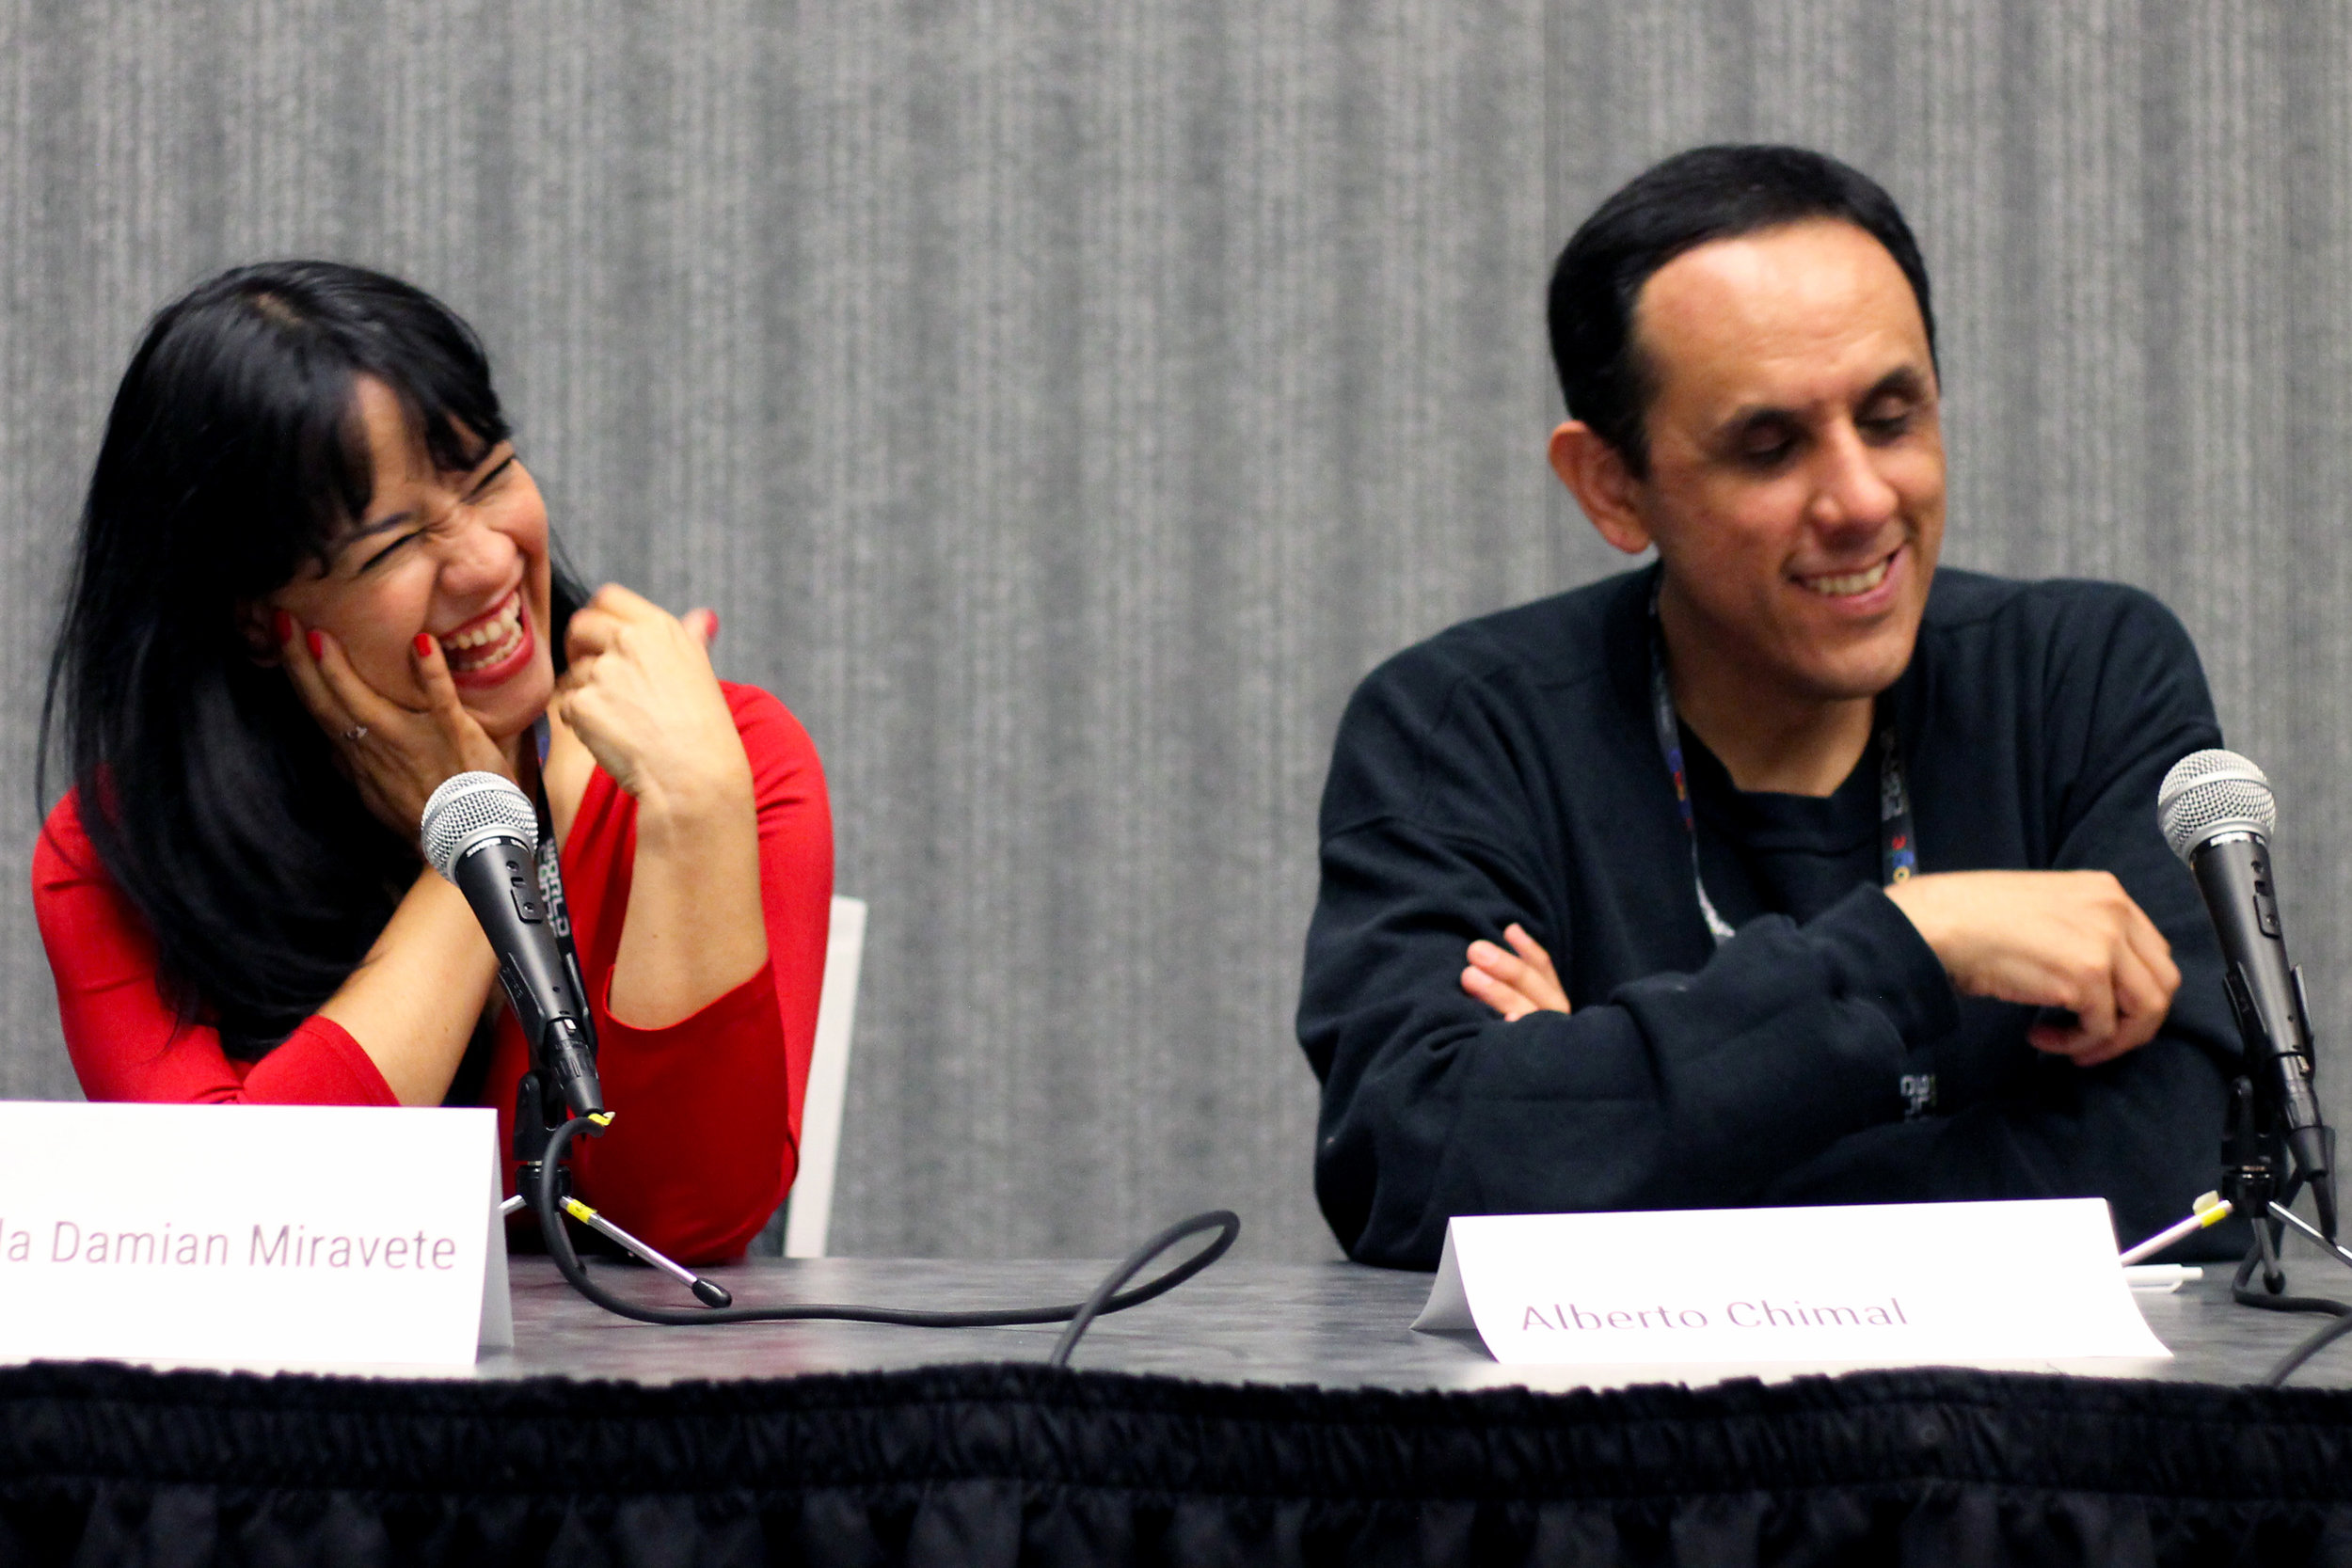 Gabriela Damián Miravete and Alberto Chimal at the history of Mexicanx Sci-Fi panel (Photo by Julia Rios)